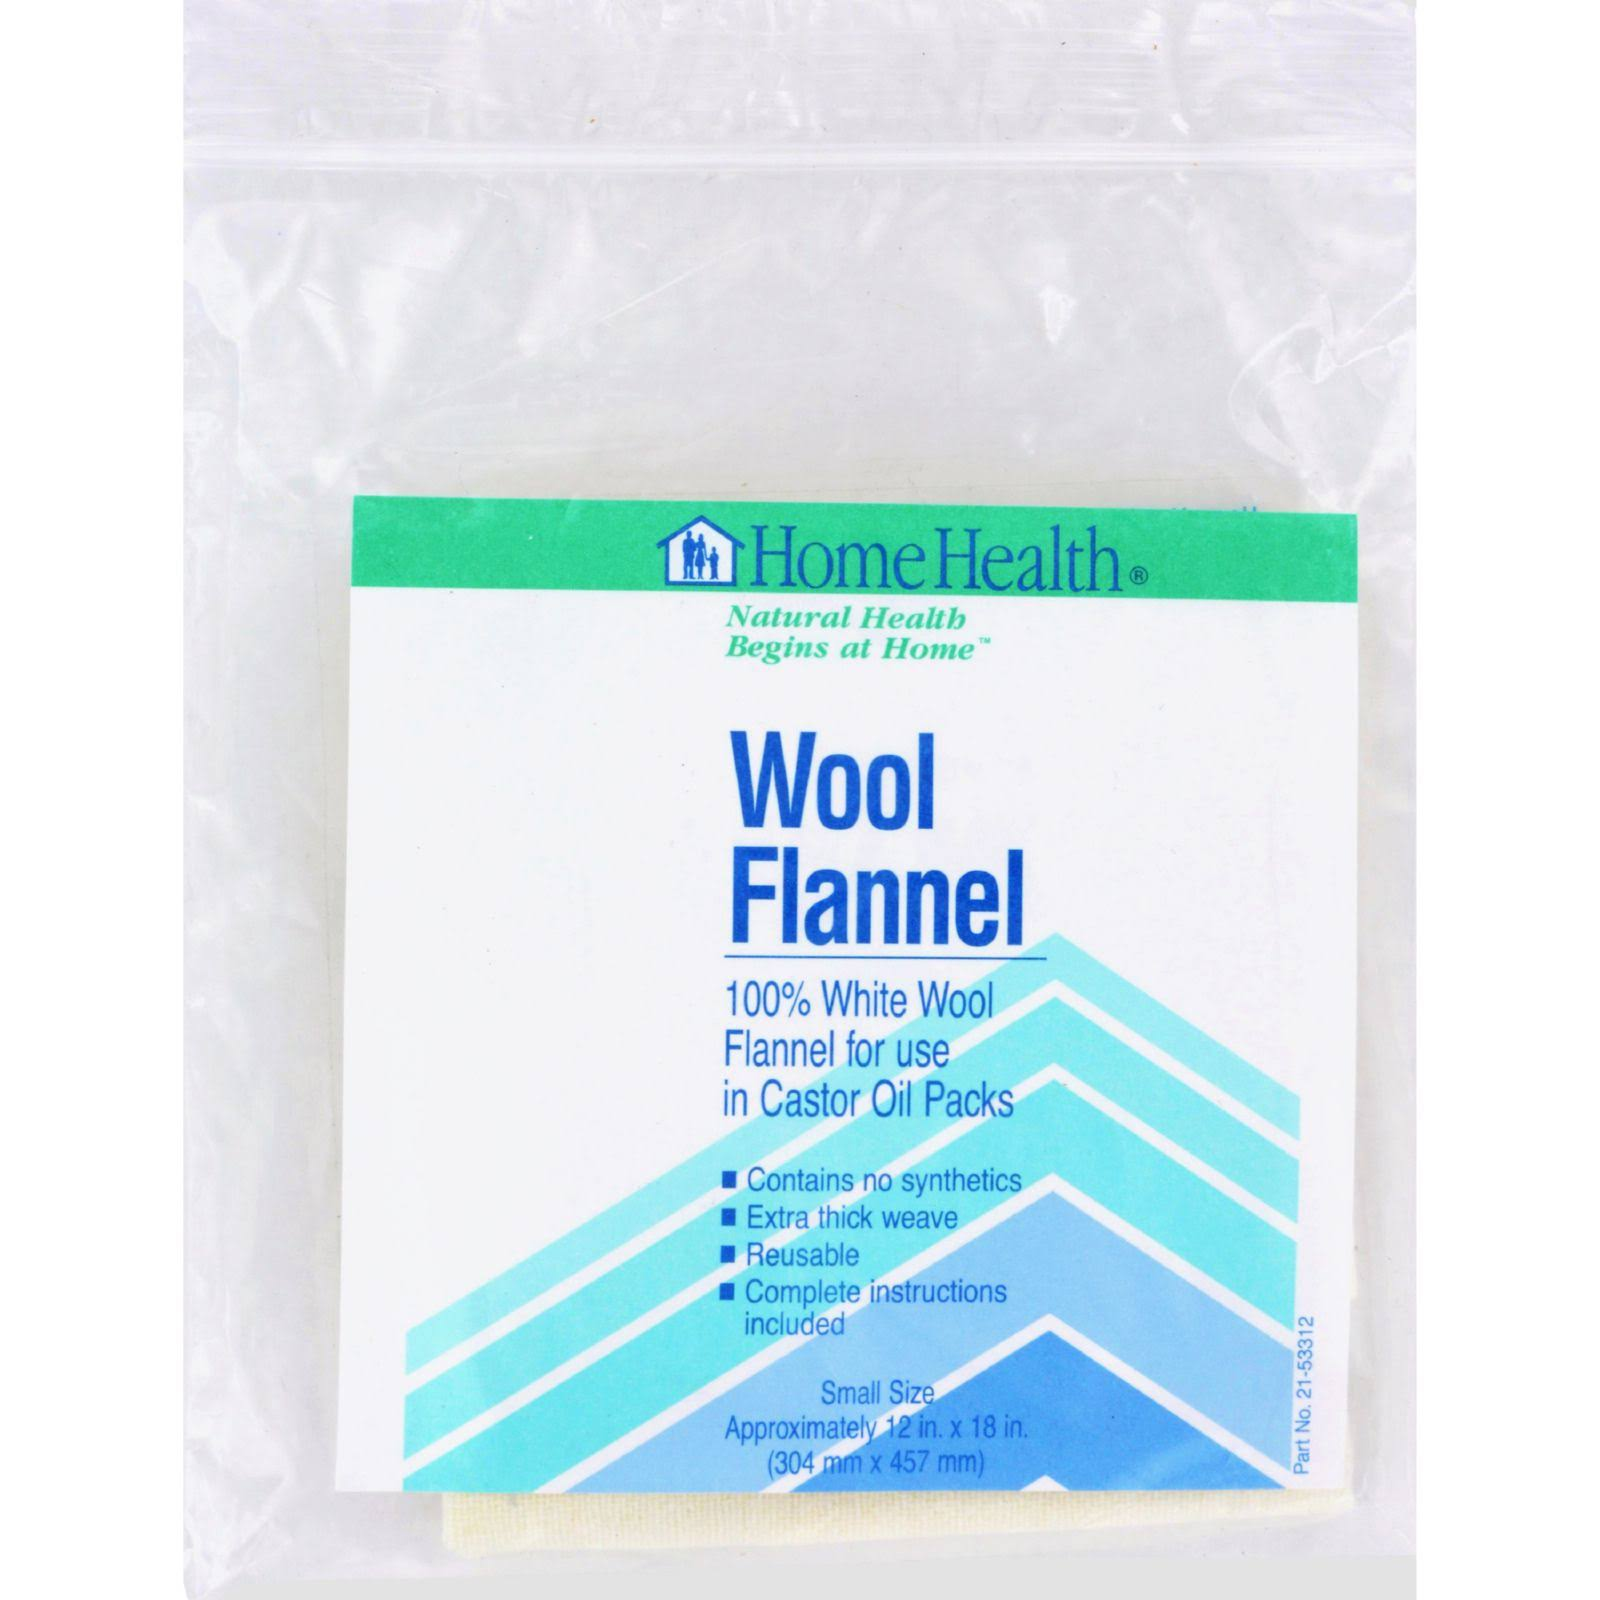 Home Health - Wool Flannel Small - 1 Cloth